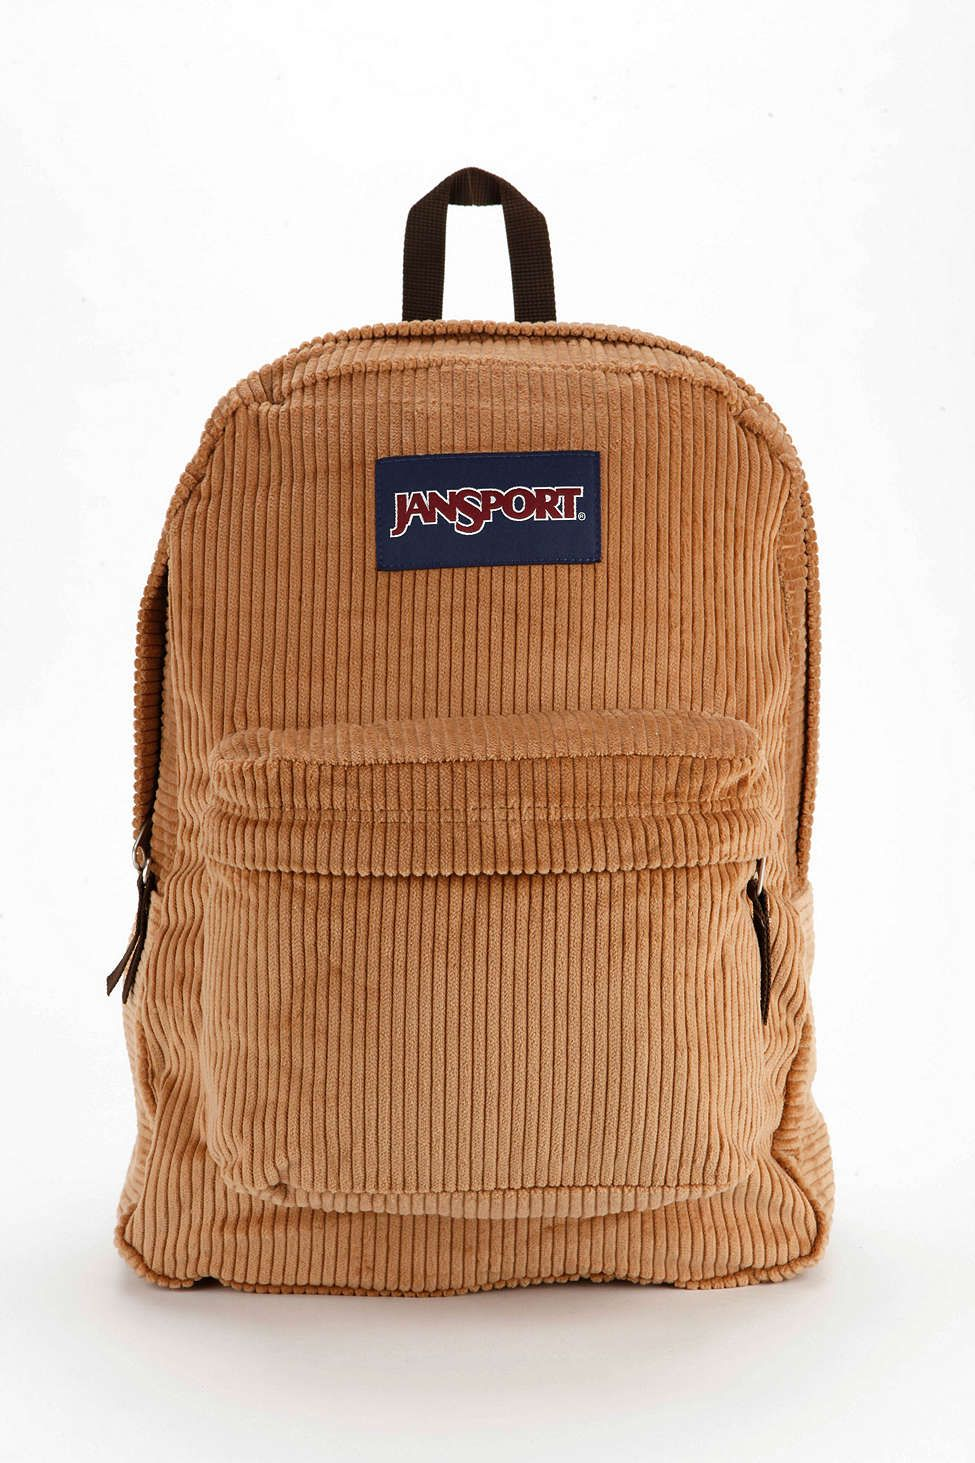 Jansport High Steaks Corduroy Backpack - Urban Outfitters  f84e135ce7b31